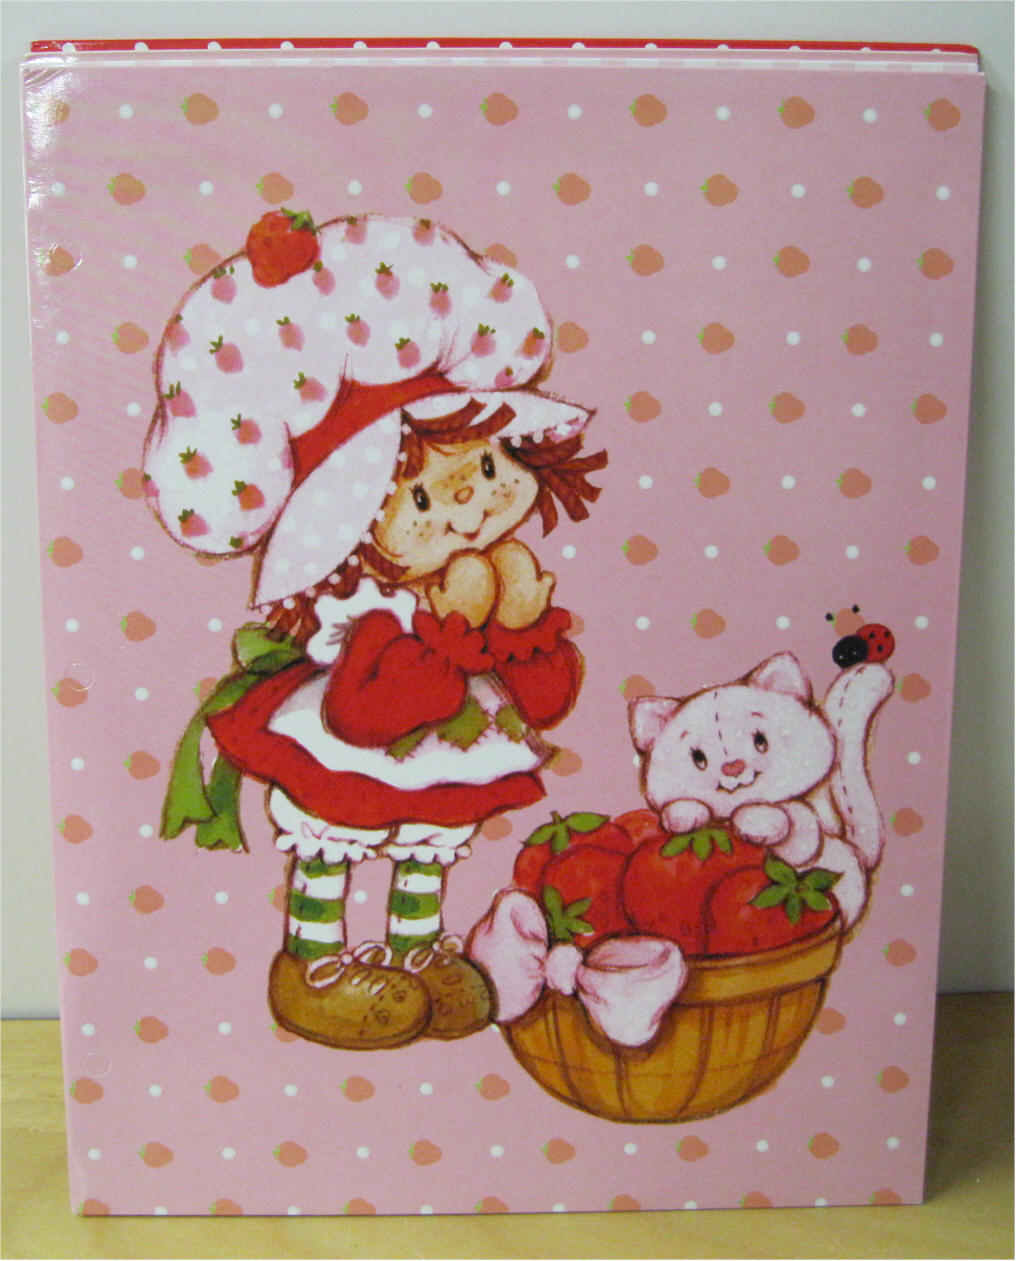 Vintage Strawberry Shortcake And Friends Strawberry shortcake vintageVintage Strawberry Shortcake Images